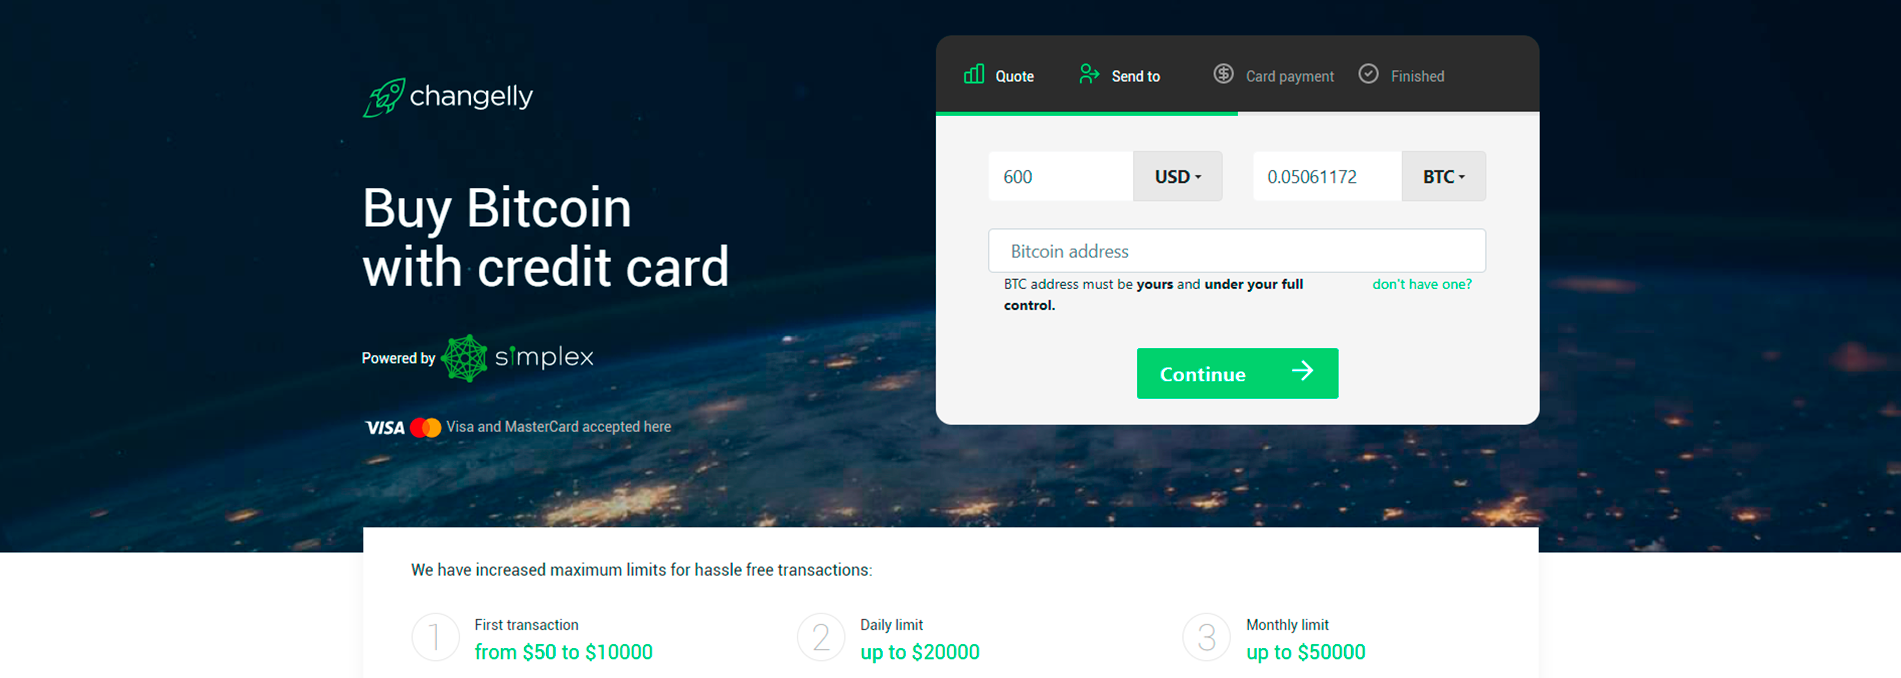 changelly buy and sell bitcoin and other cryptocurrencies